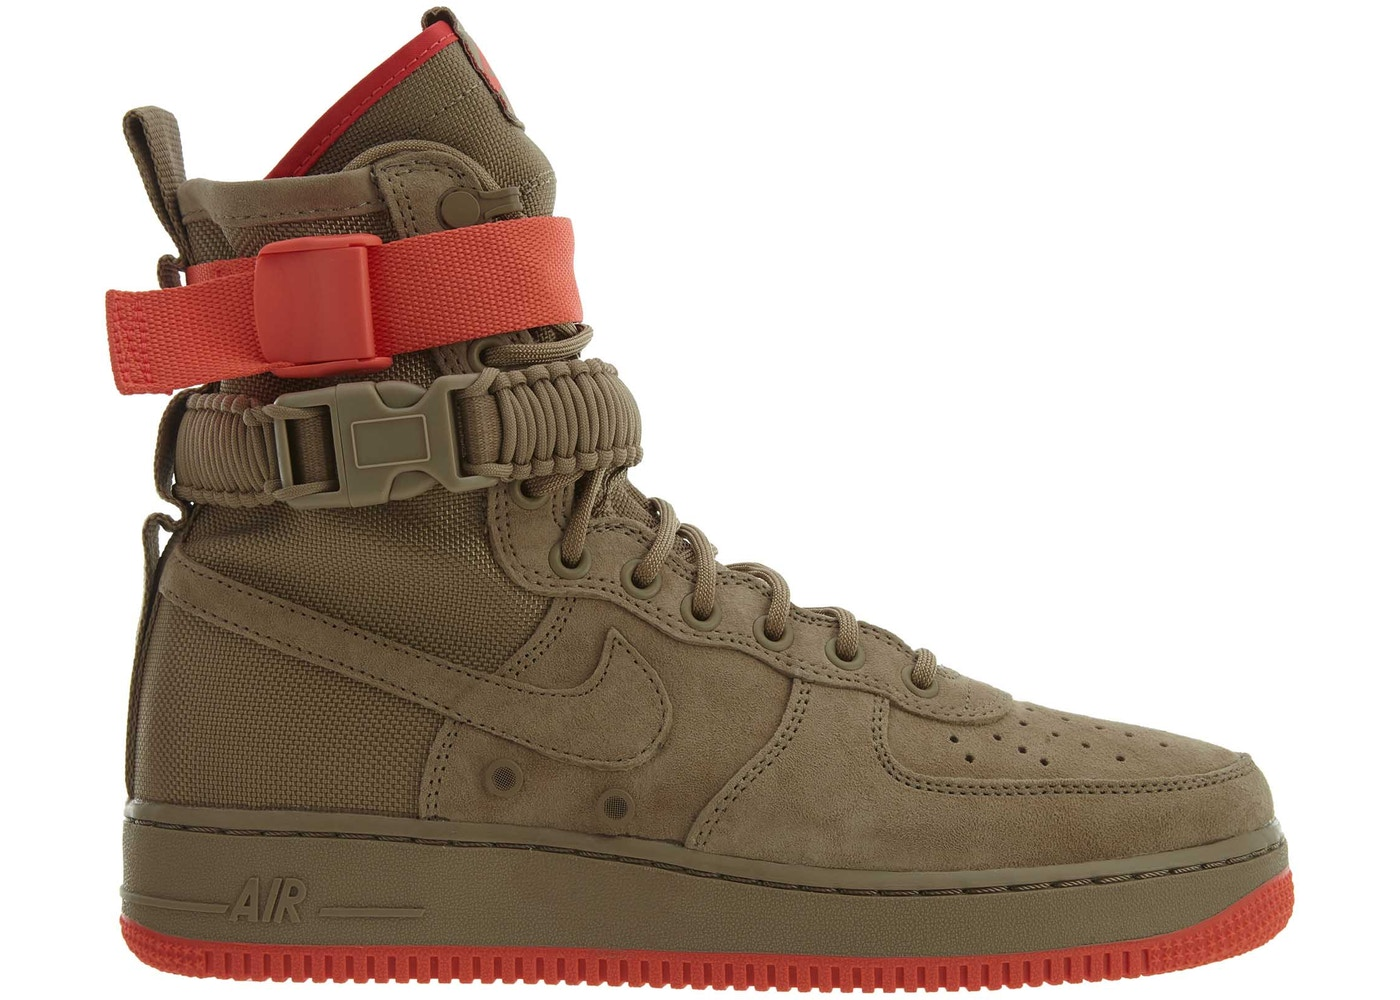 cc58938e08 Buy Nike Other Shoes & Deadstock Sneakers